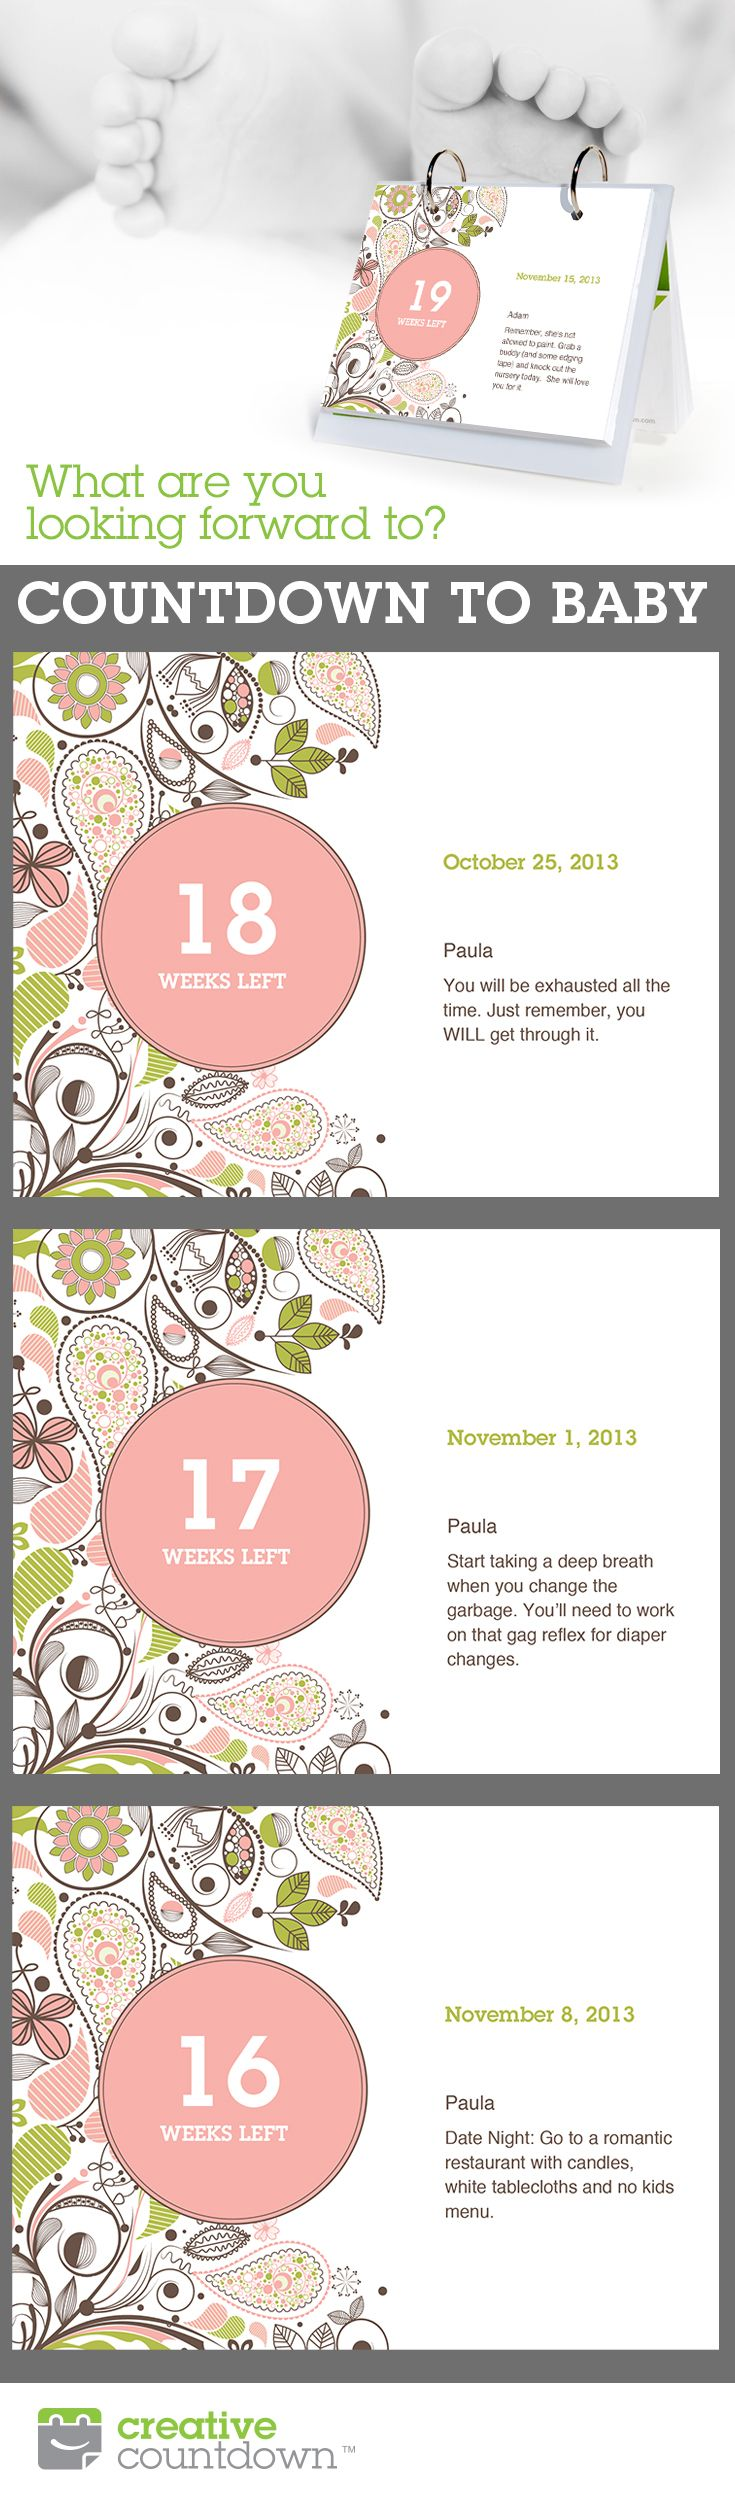 A customized Countdown to Baby makes a great shower gift. Many design styles to choose from and over 100 suggested quick-fill entries to make calendar building easy! Www.creativecountdown.com.